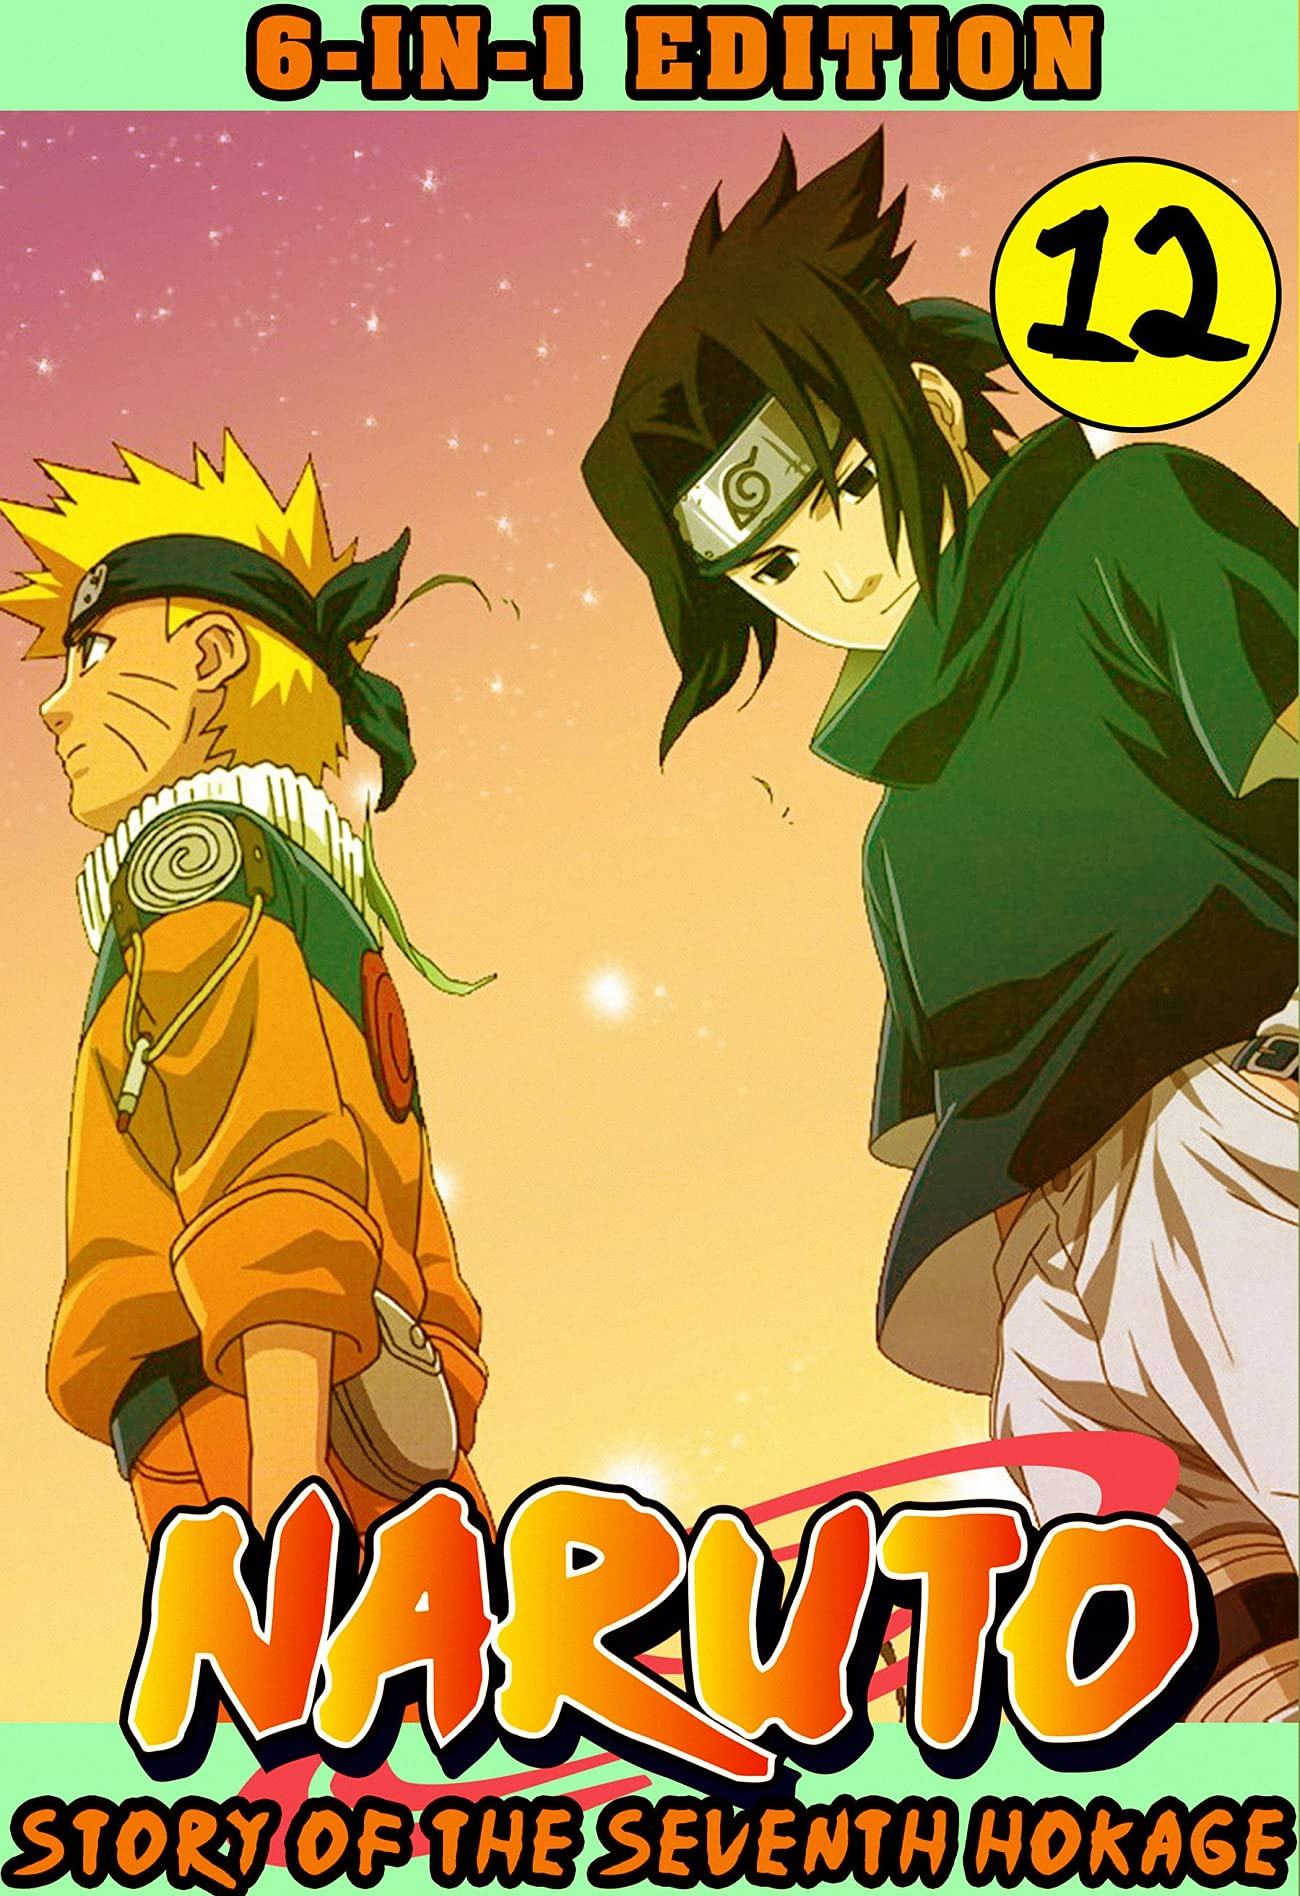 The Seventh Hokage Story 12: New 6-in-1 Edition Collection Pack 12 - Shonen Naruto Action Manga Graphic Novel Ninja For Teen